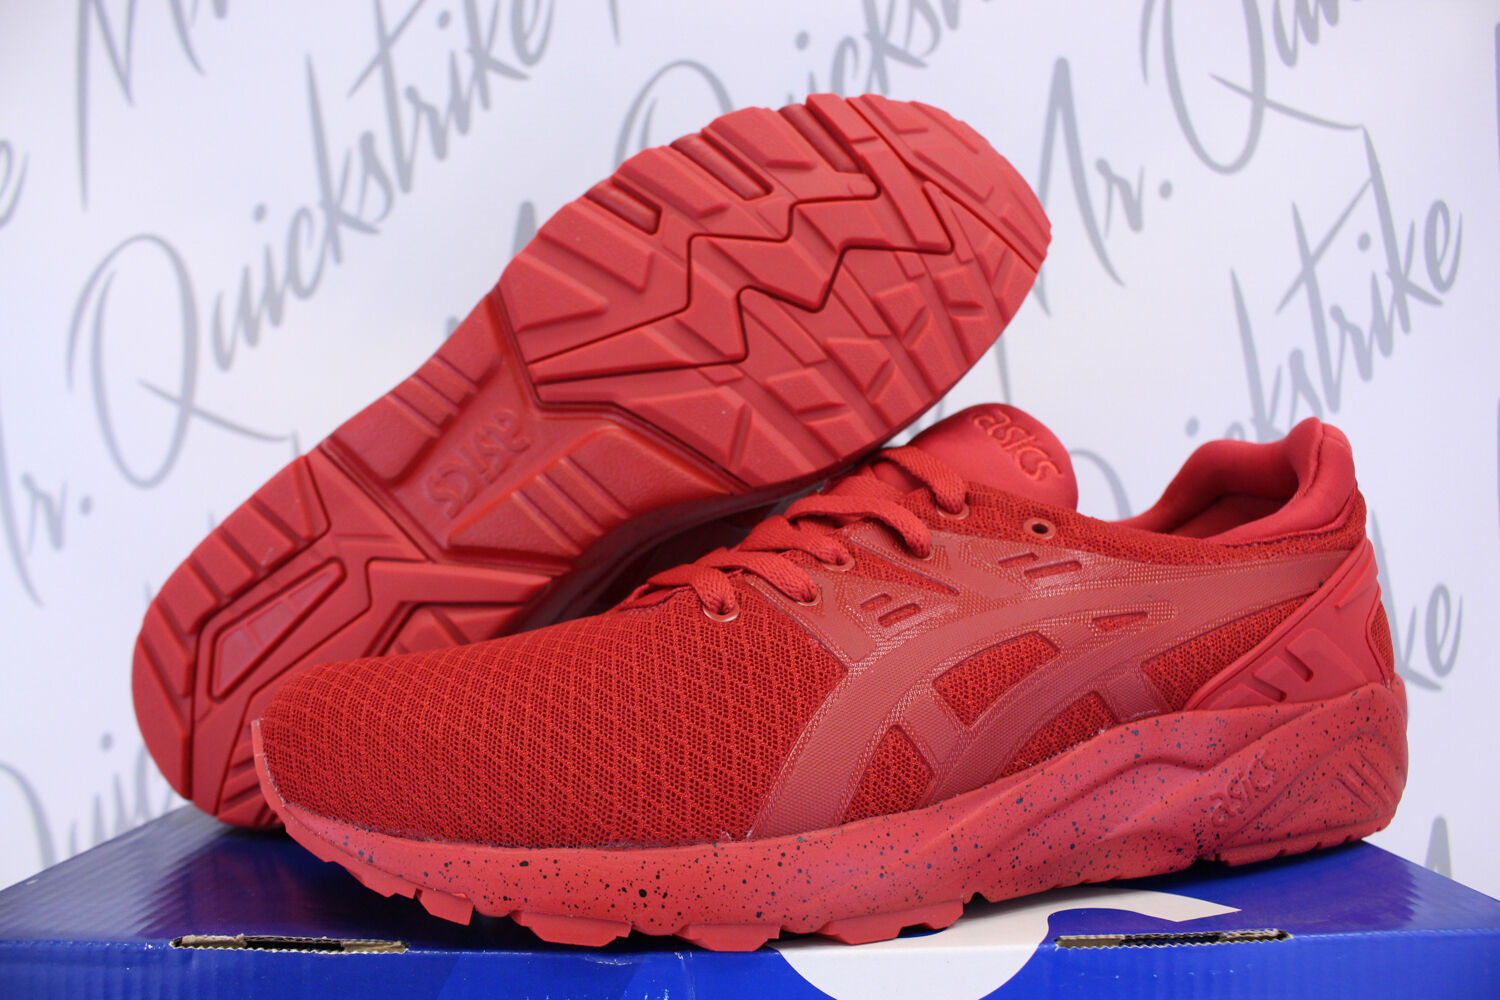 ASICS GEL KAYANO TRAINER SZ 12 MONOTONE PACK MONO RED H6M4N 2525